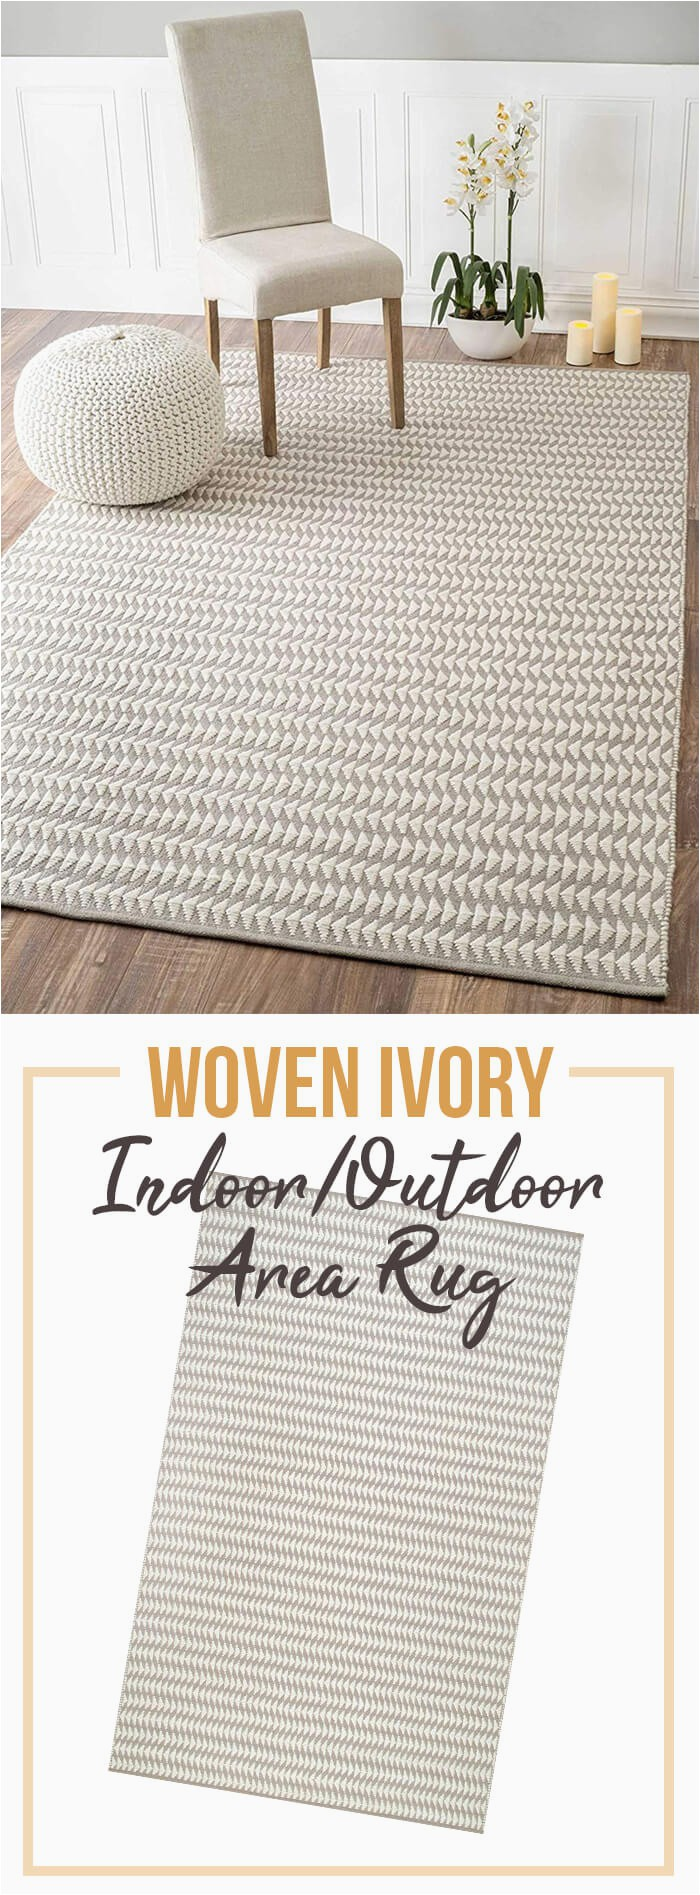 07 farmhouse rug ideas homebnc